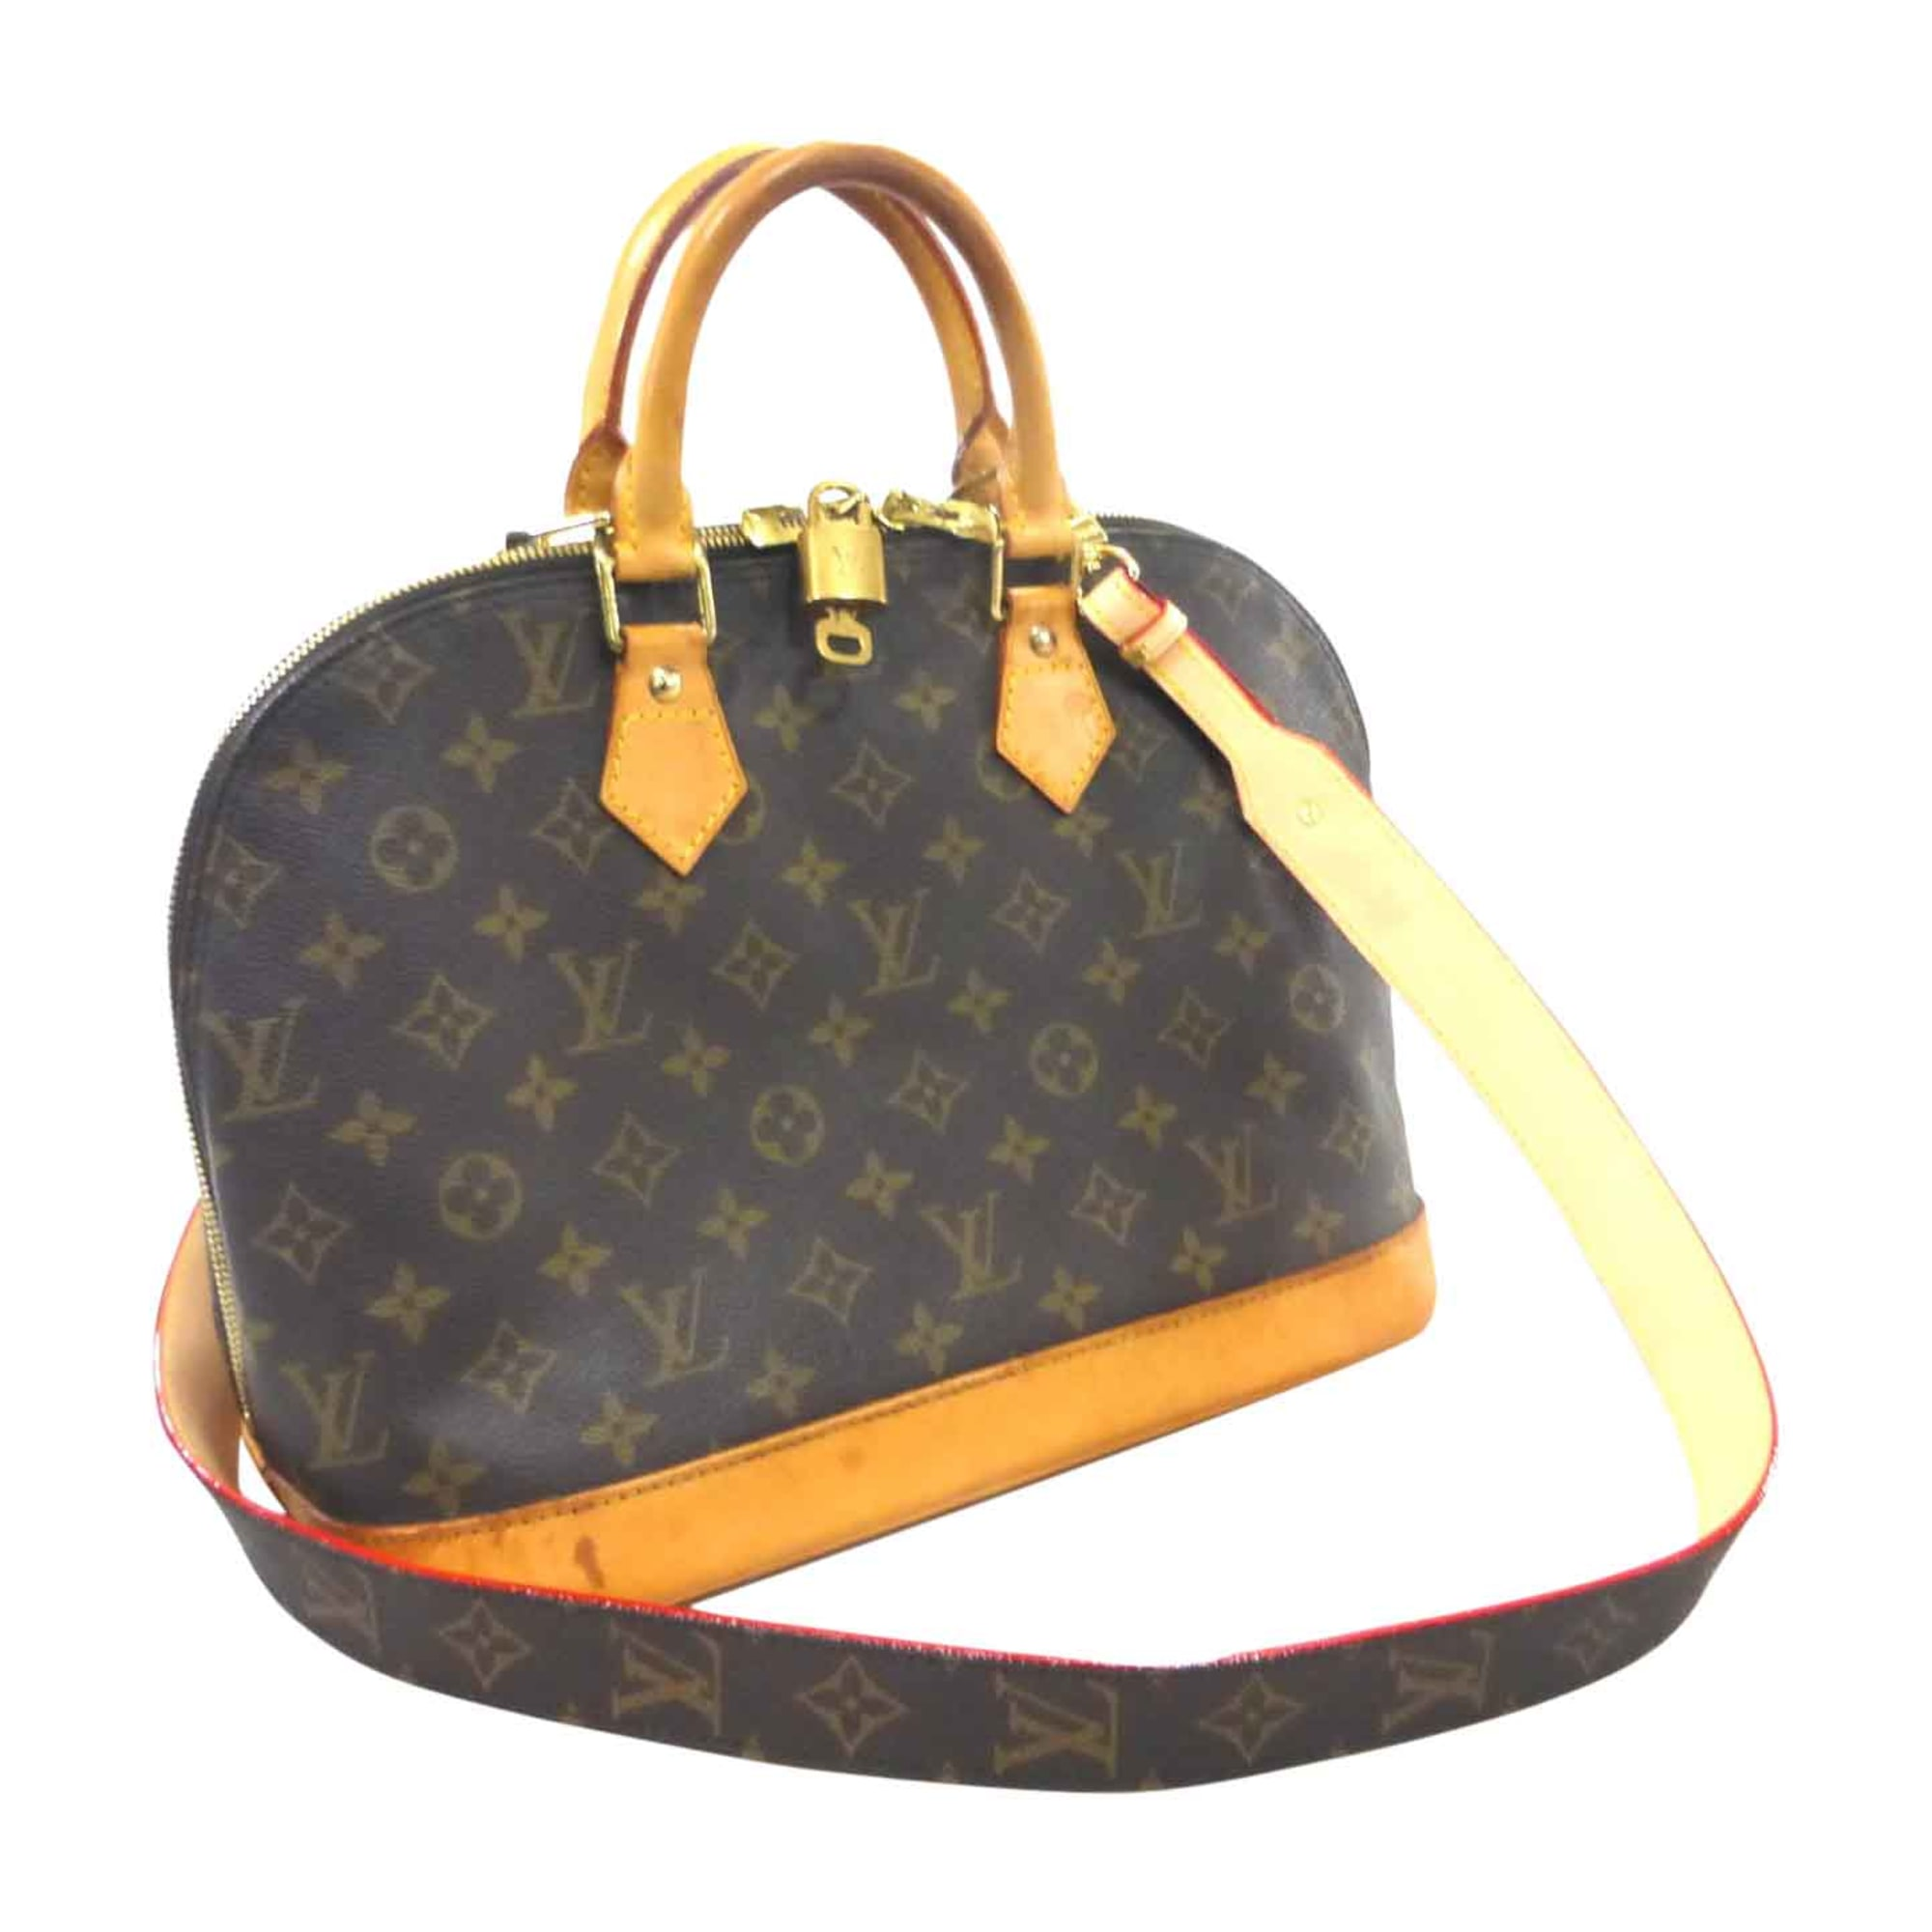 3d169082a71e Sac à main en cuir LOUIS VUITTON alma marron - 7860954